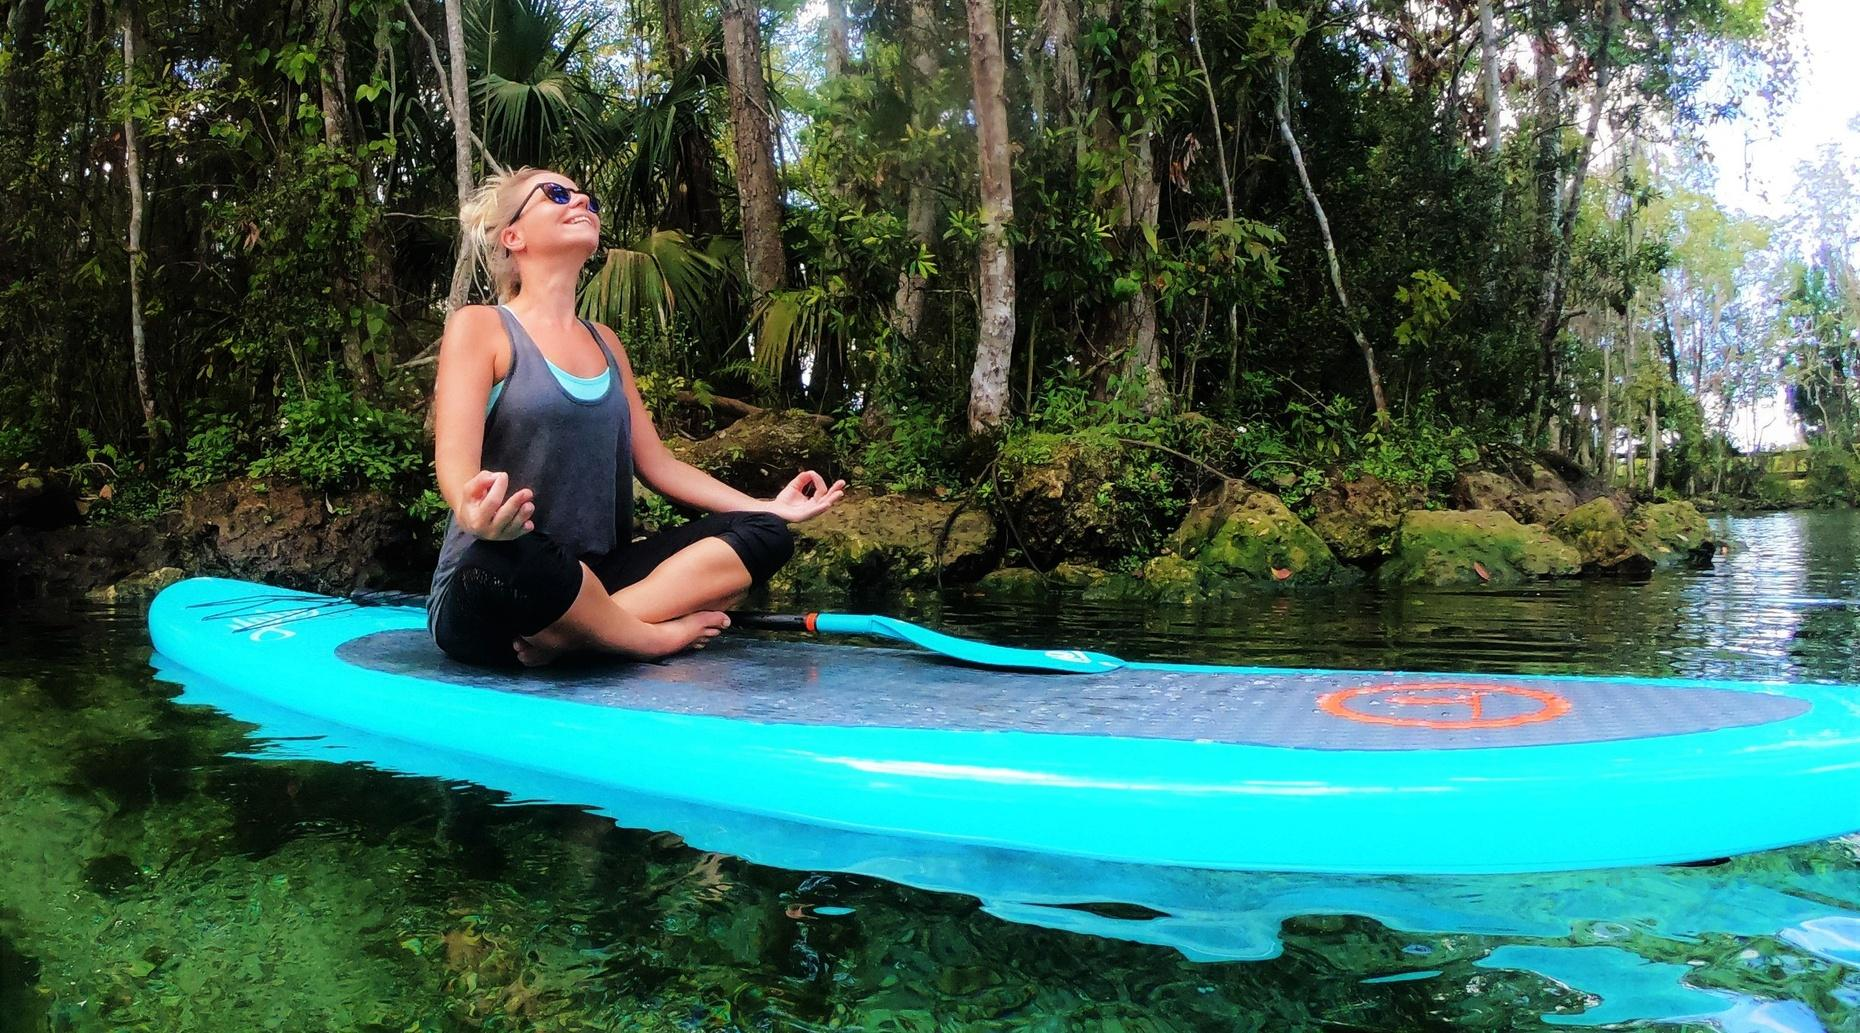 4 Hour 11' YOLO Hammerhead Paddle Board Rental and Manatee Viewing at Crystal River